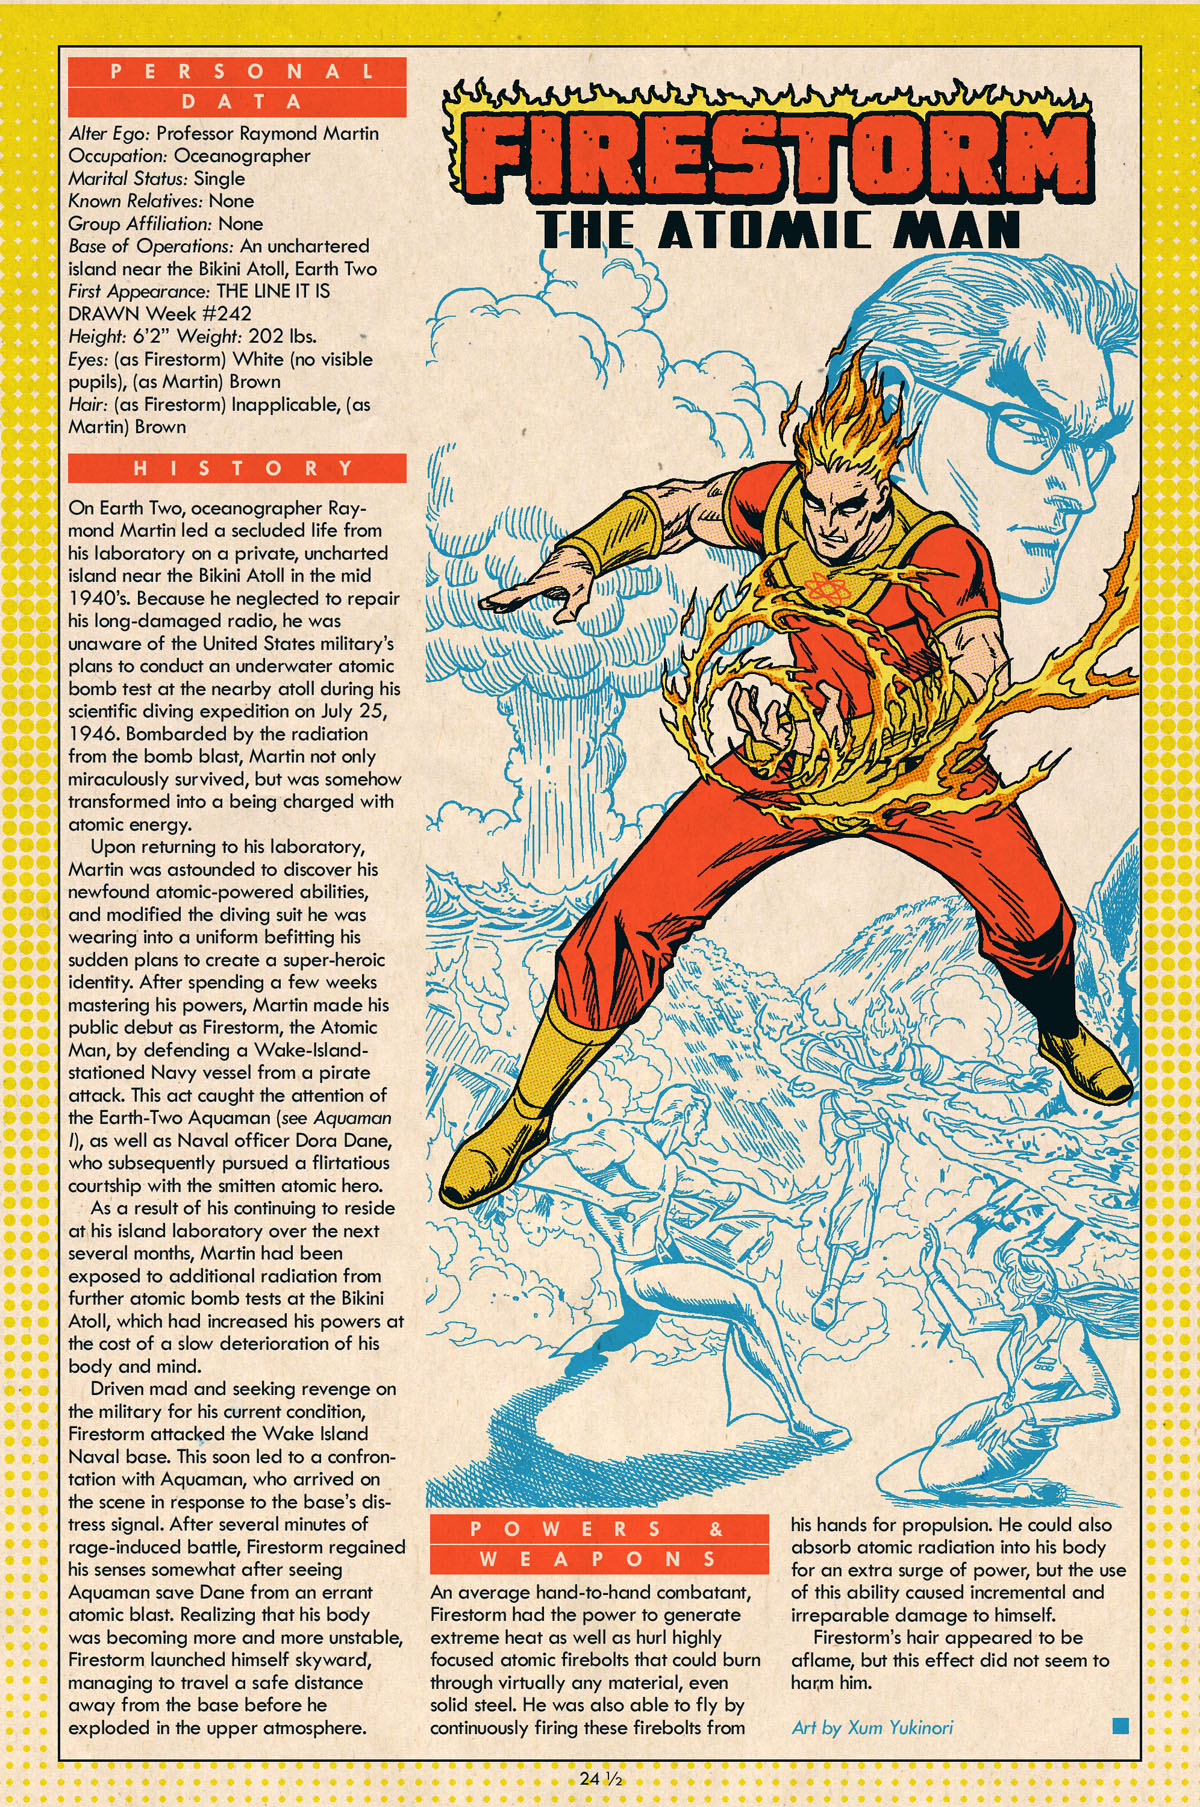 Golden Age Firestorm Who's Who by Xum Yukinori